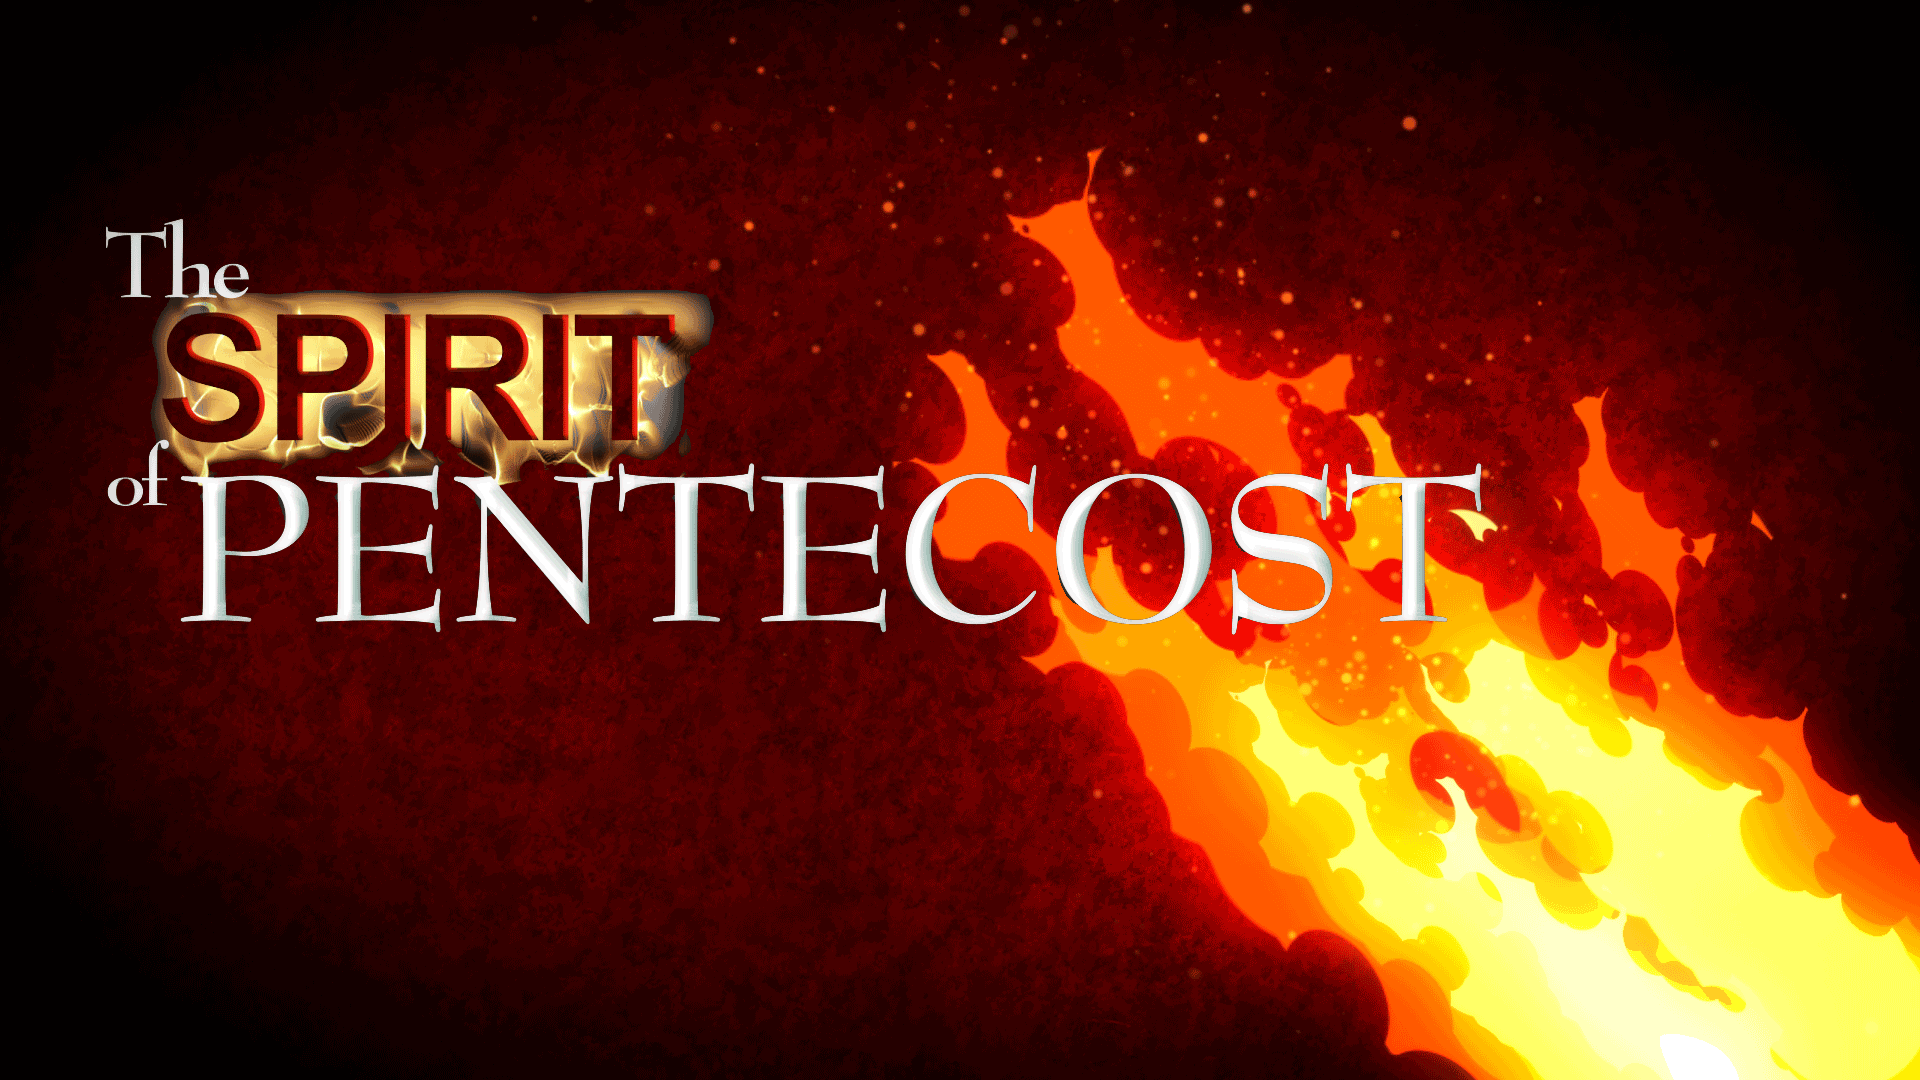 pentecost - photo #39